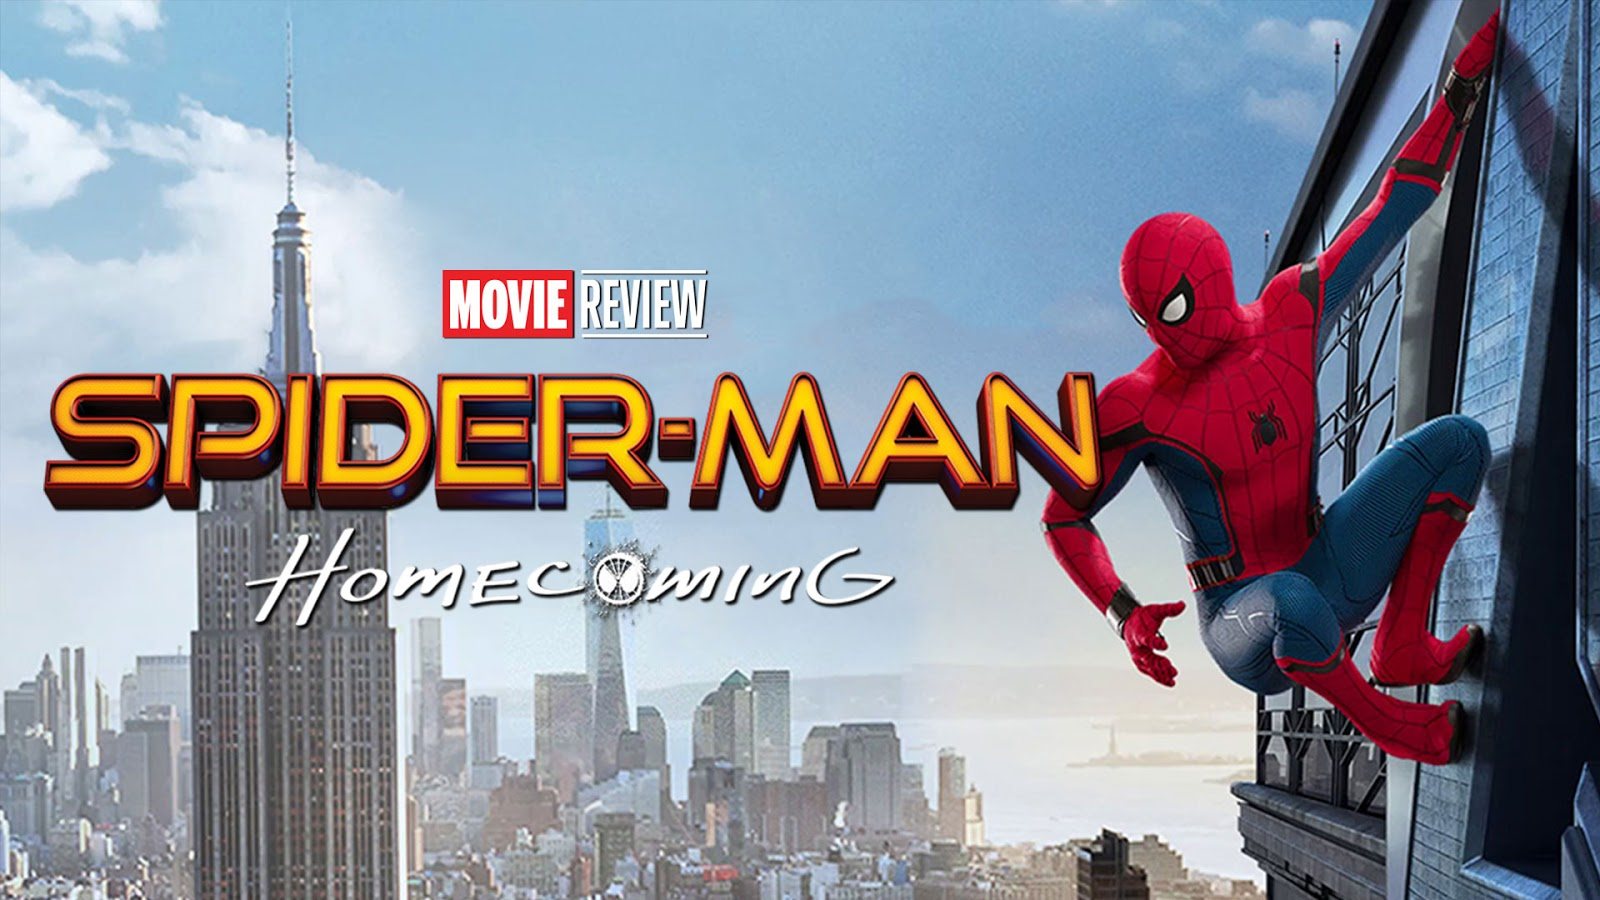 movie review Spider-Man: Homecoming podcast